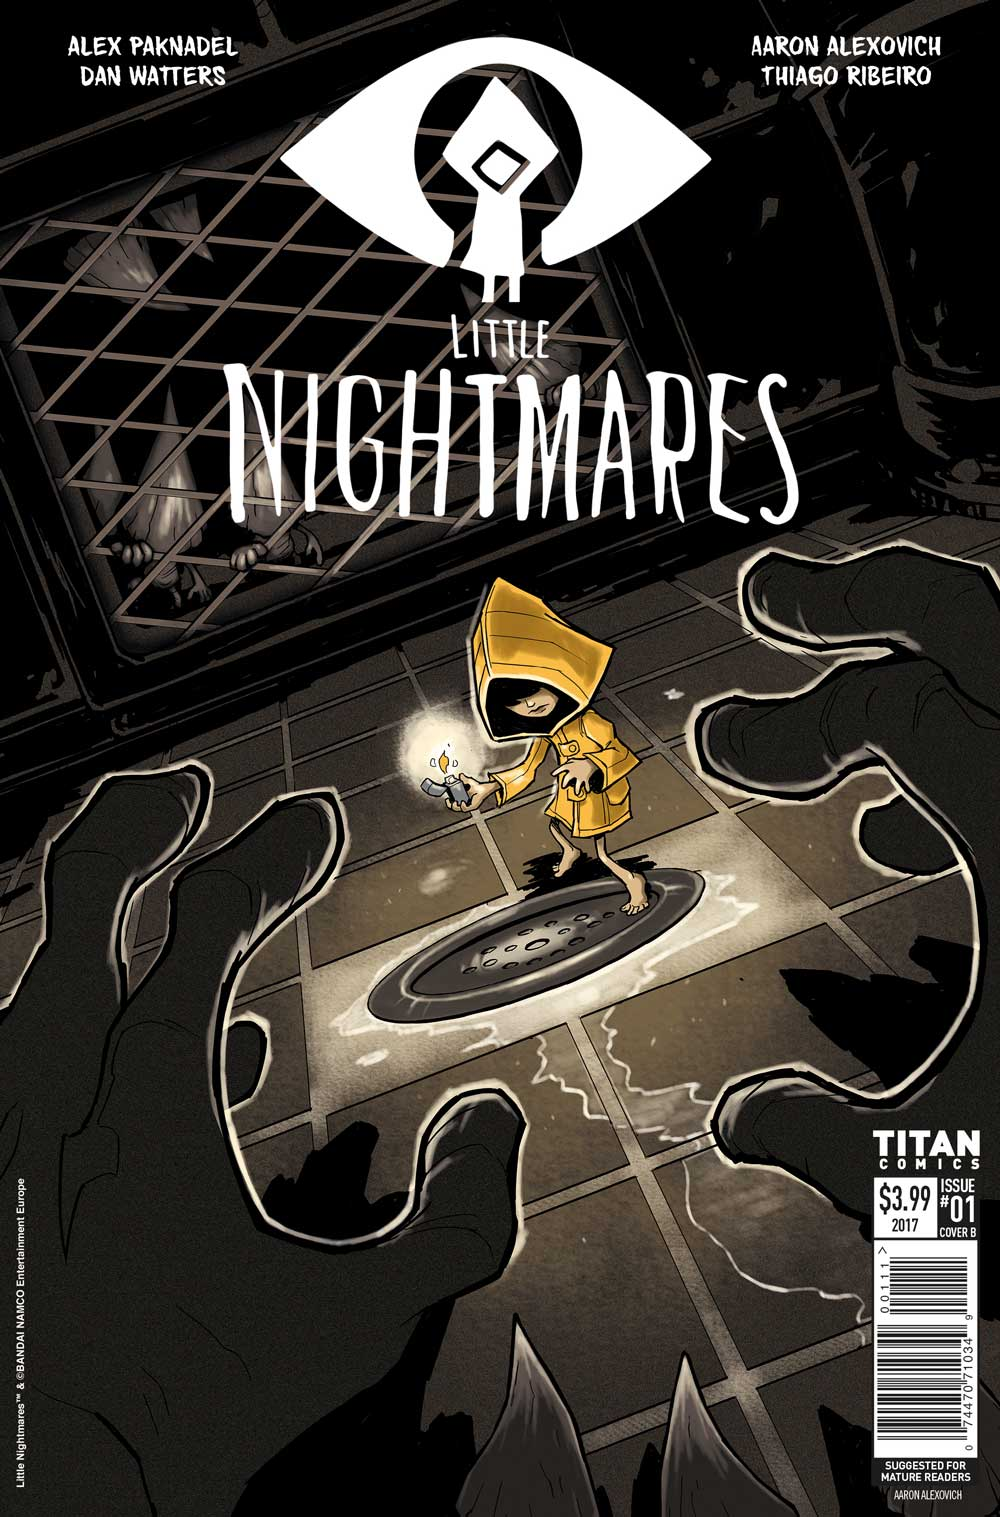 Little Nightmares #1 - Cover A